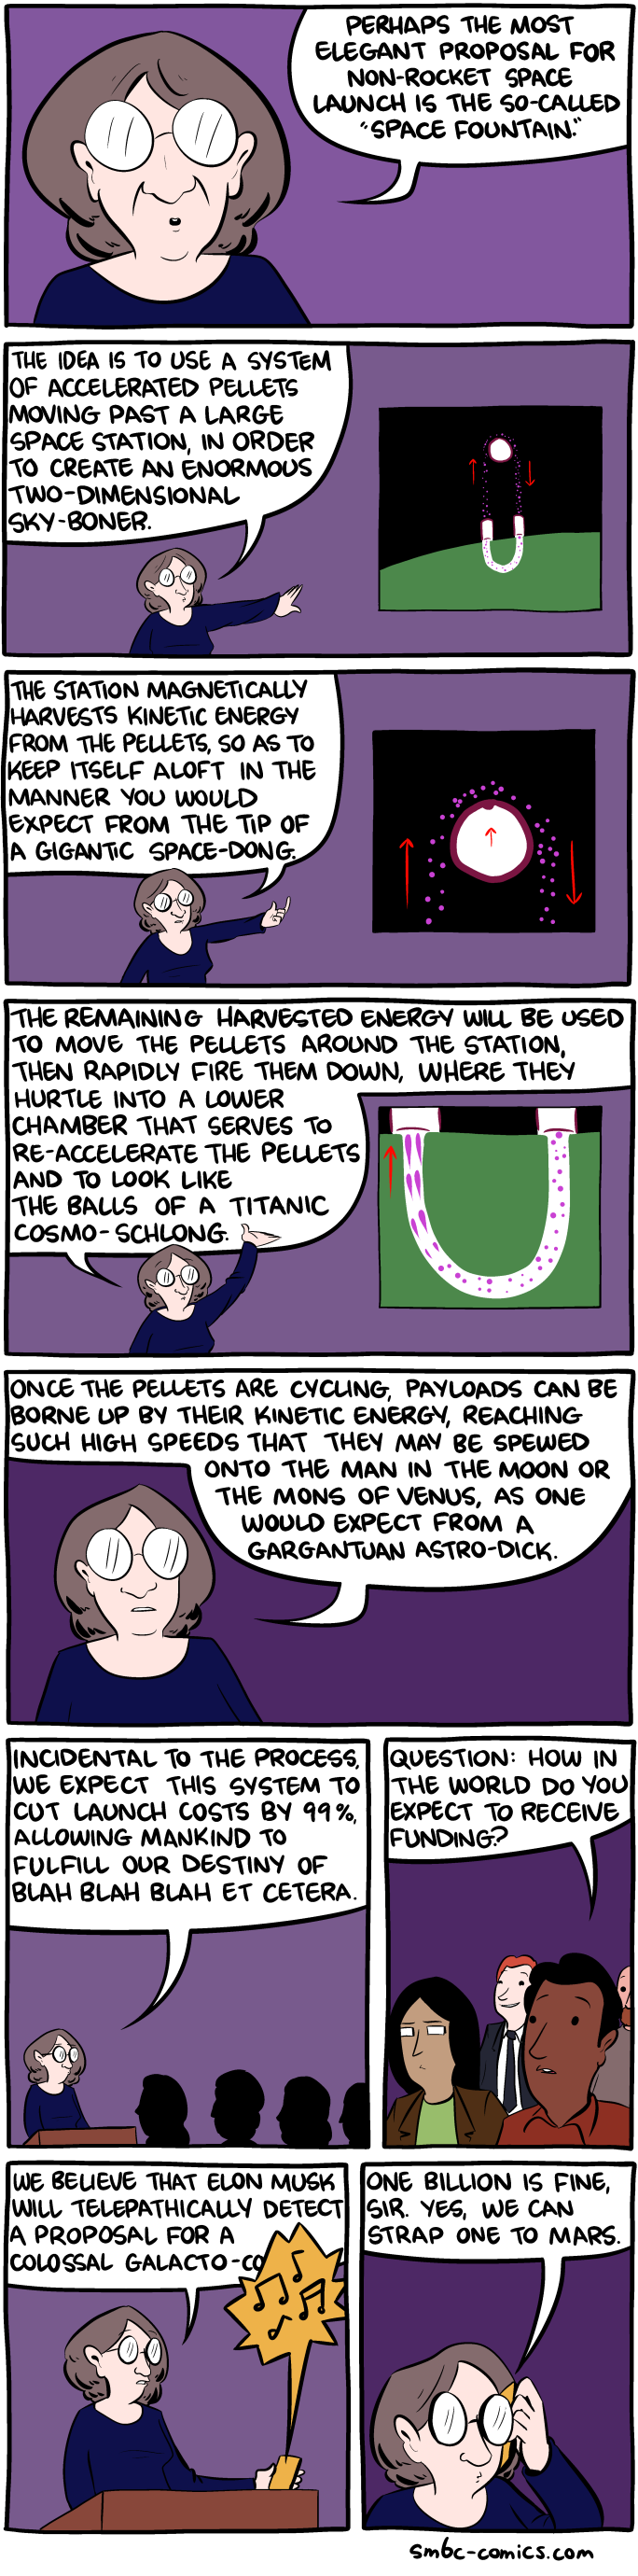 Saturday Morning Breakfast Cereal - The Space Fountain